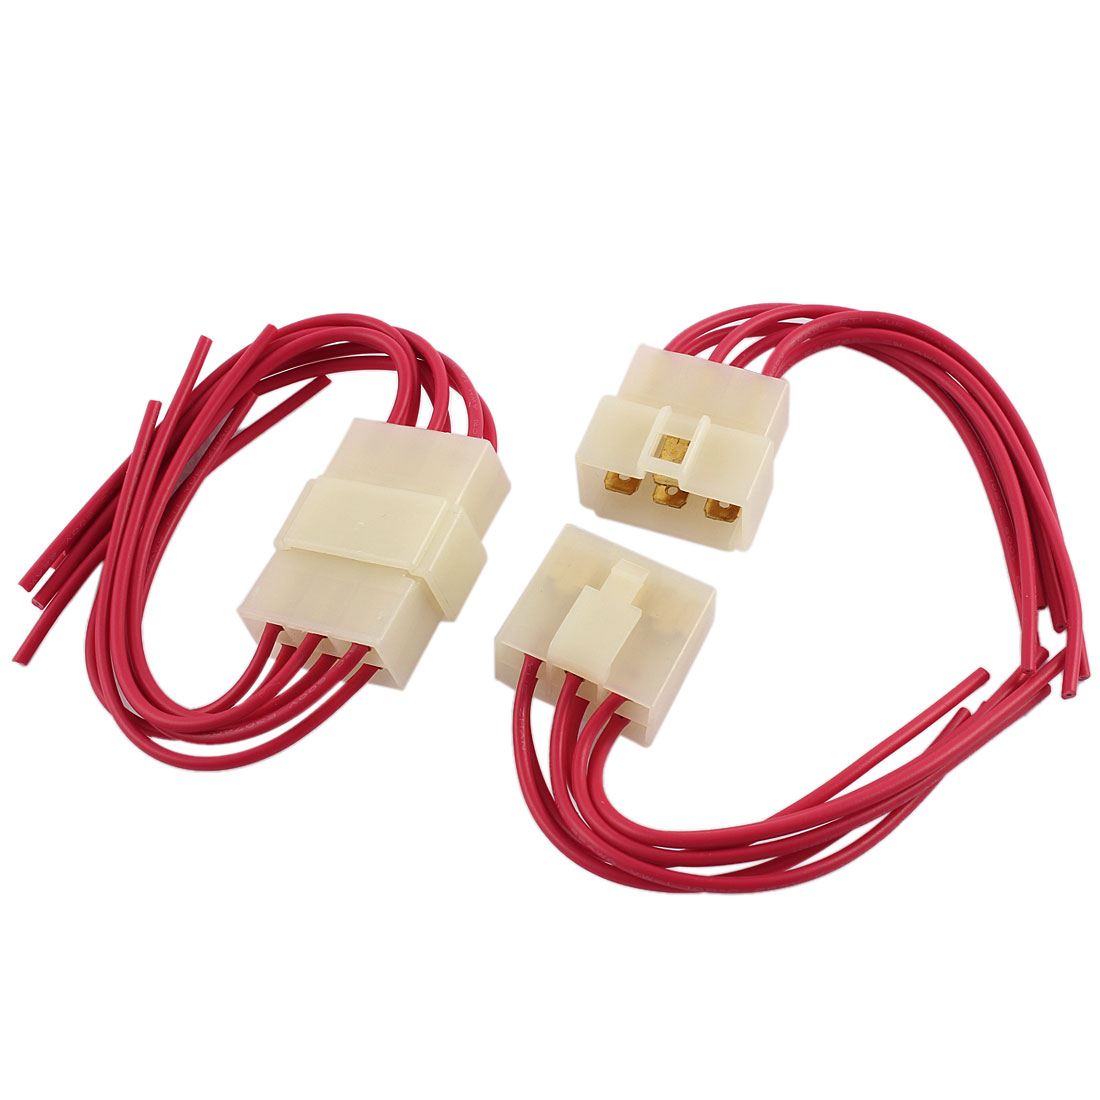 medium resolution of 2 pcs car audio radio stereo wiring harness 6 pin wire adapter connectors